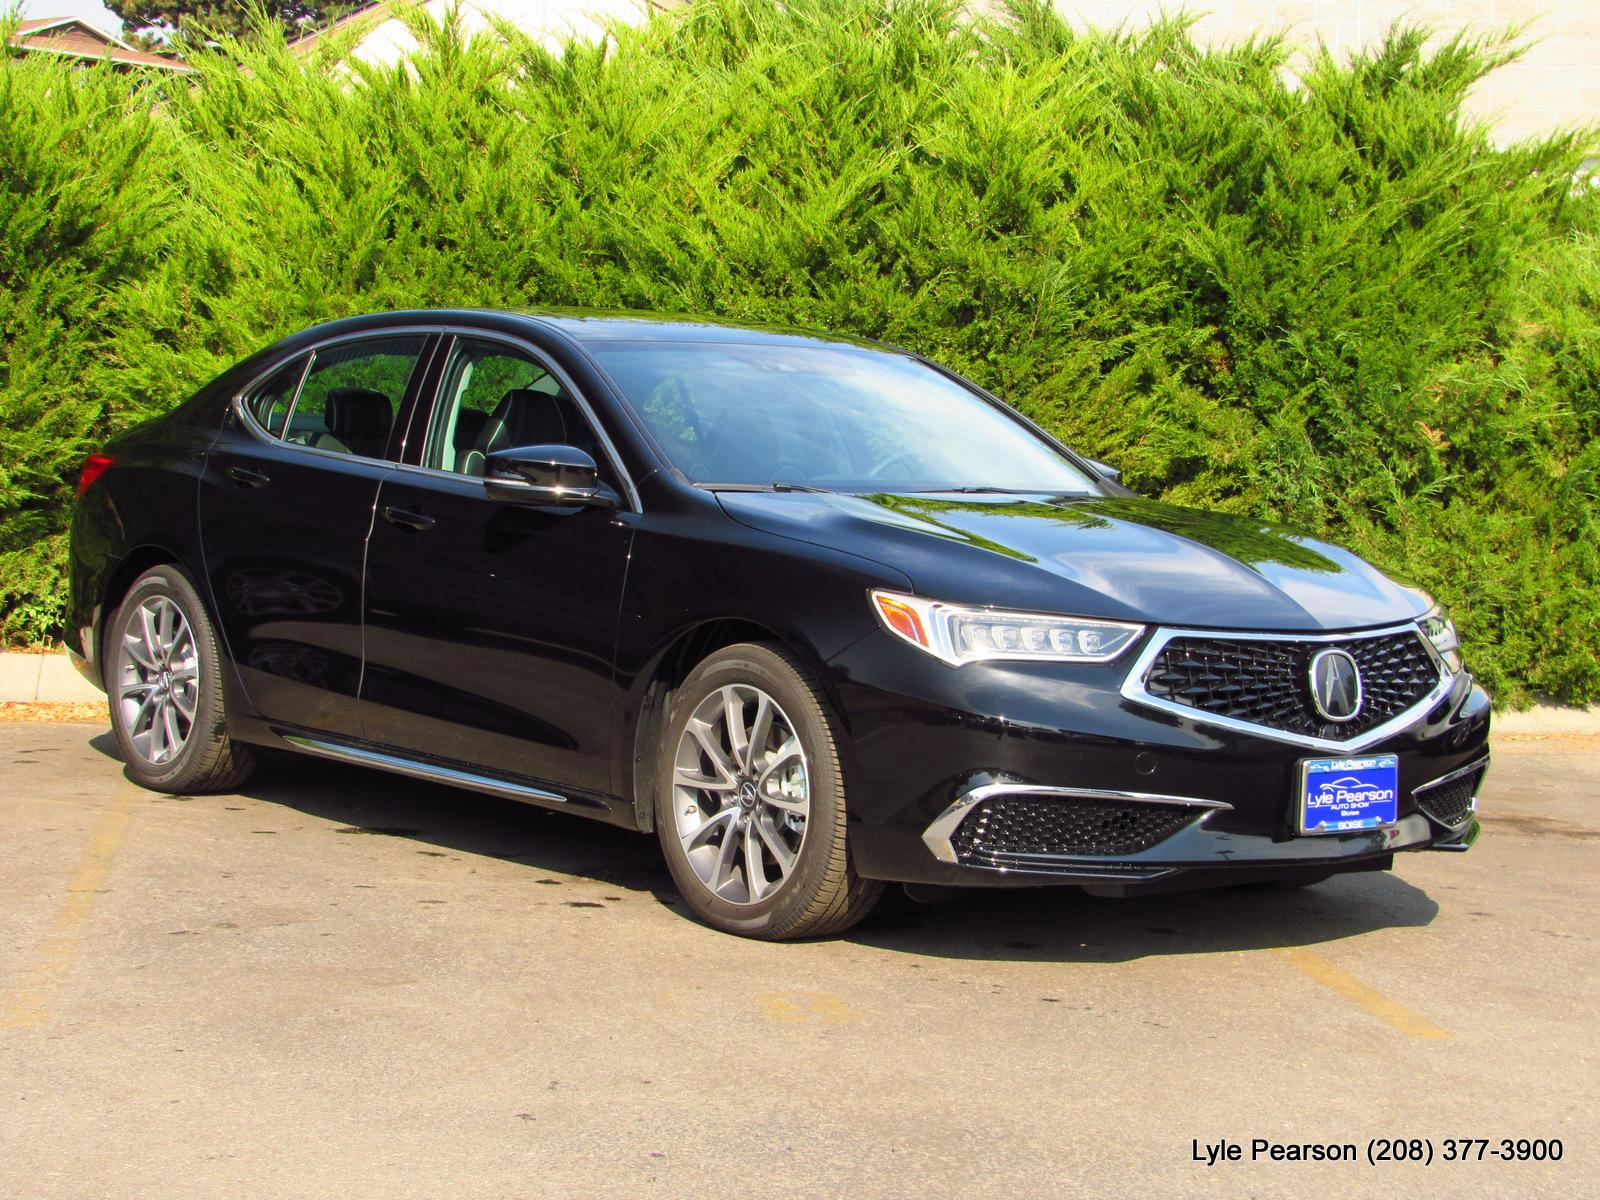 New 2019 Acura TLX 3 5 V 6 9 AT P AWS with Technology Package 4dr